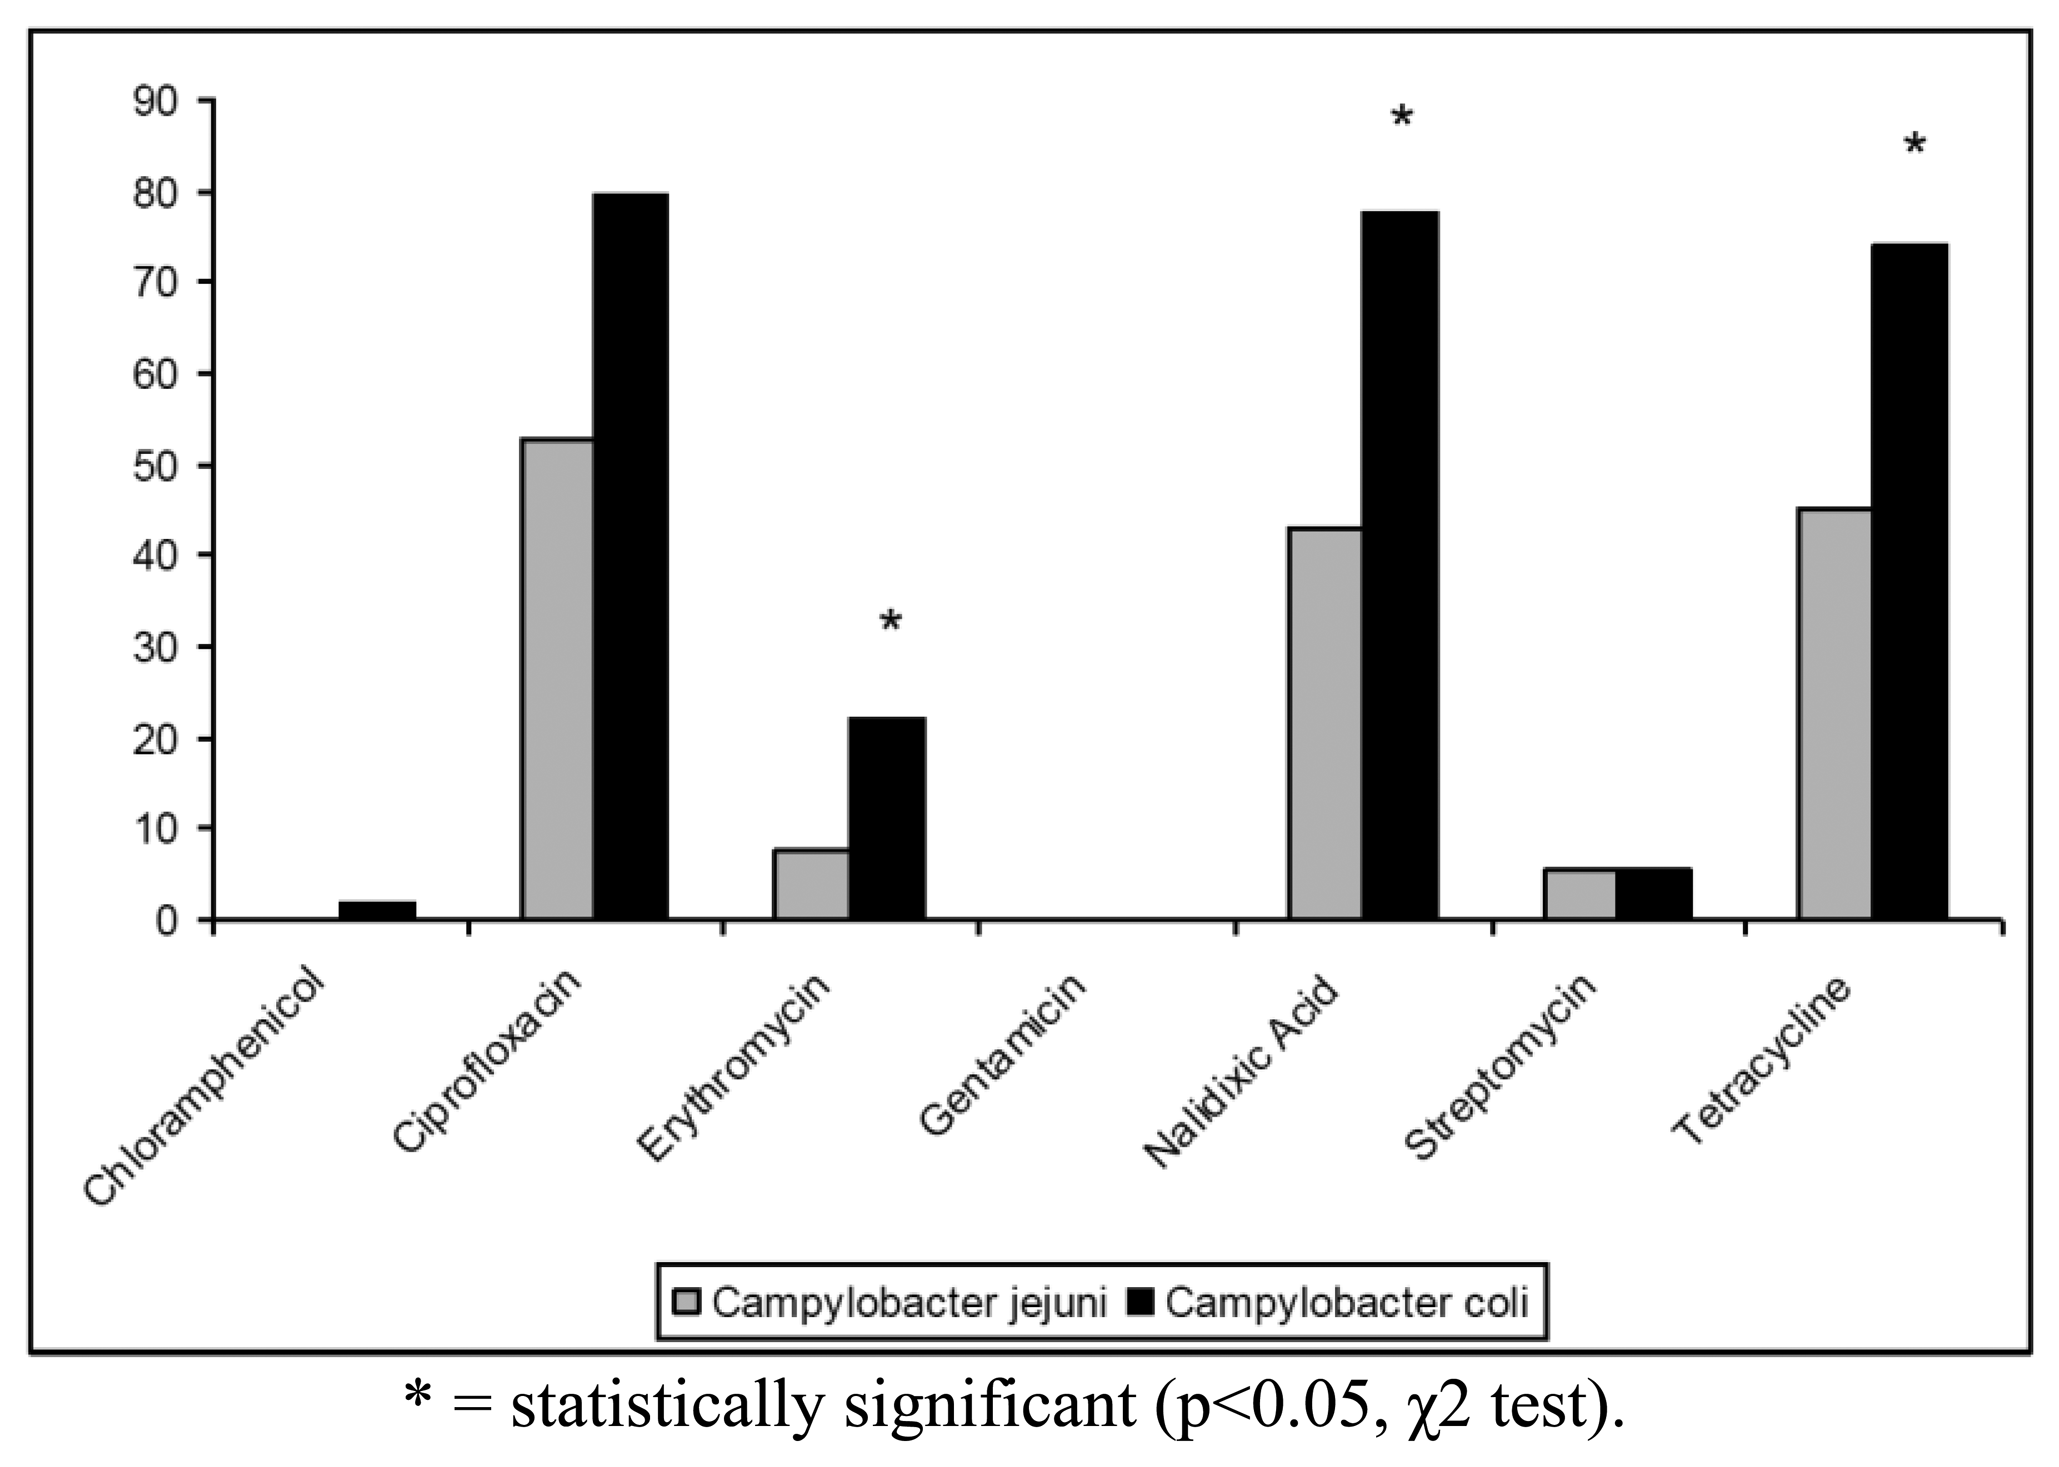 antimicrobial suscepibility pattern of escherichia coli Susceptibility patterns and esbl rates of escherichia coli from urinary tract infections in canada and the r cant n, f baqueroincidence and antimicrobial susceptibility of escherichia coli and klebsiella pneumoniae with extended-spectrum beta-lactamases in community- and hospital.